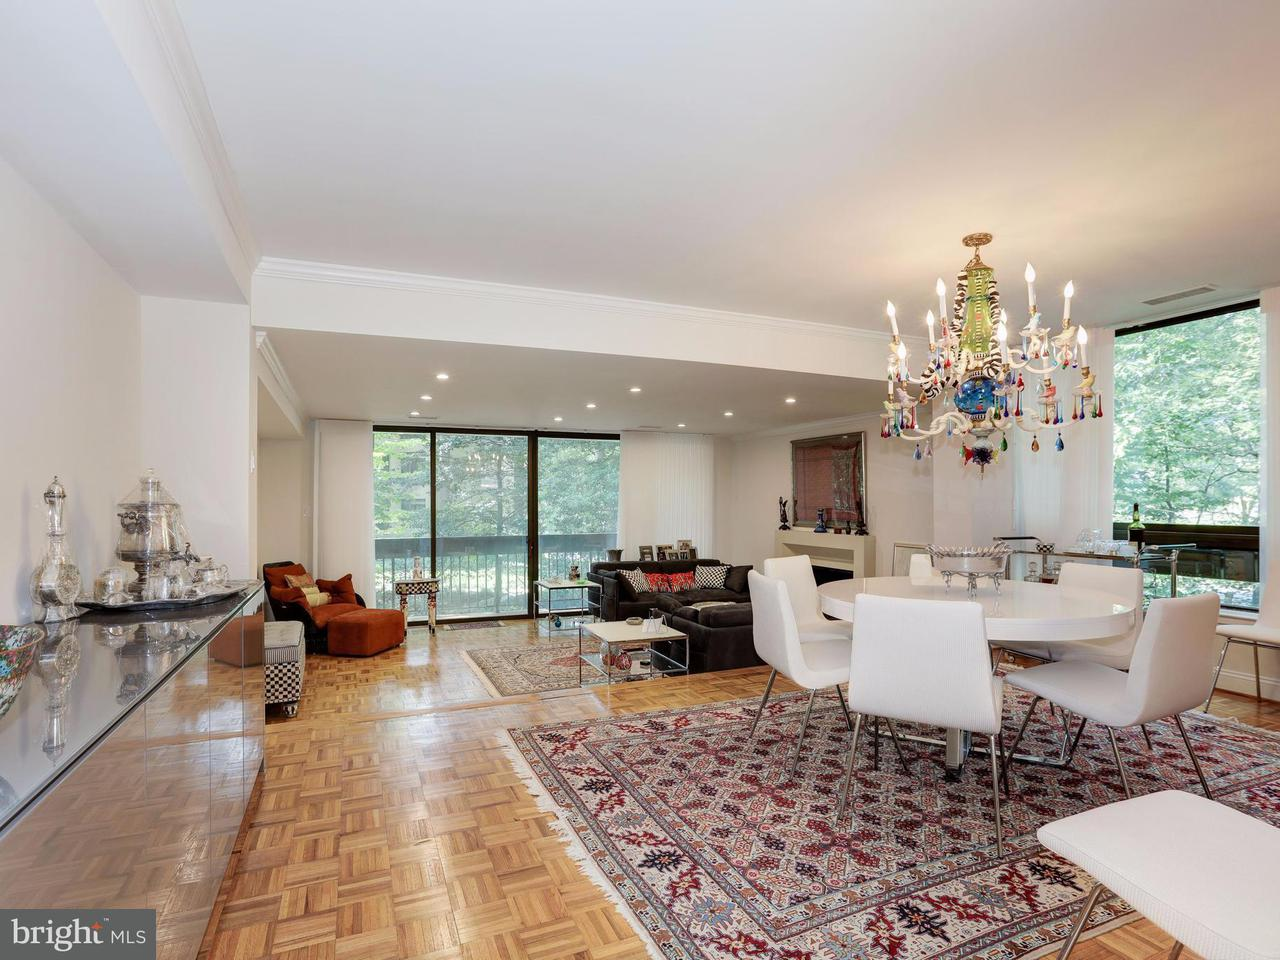 Condominium for Sale at 4924 SENTINEL DR #2-206 4924 SENTINEL DR #2-206 Bethesda, Maryland 20816 United States